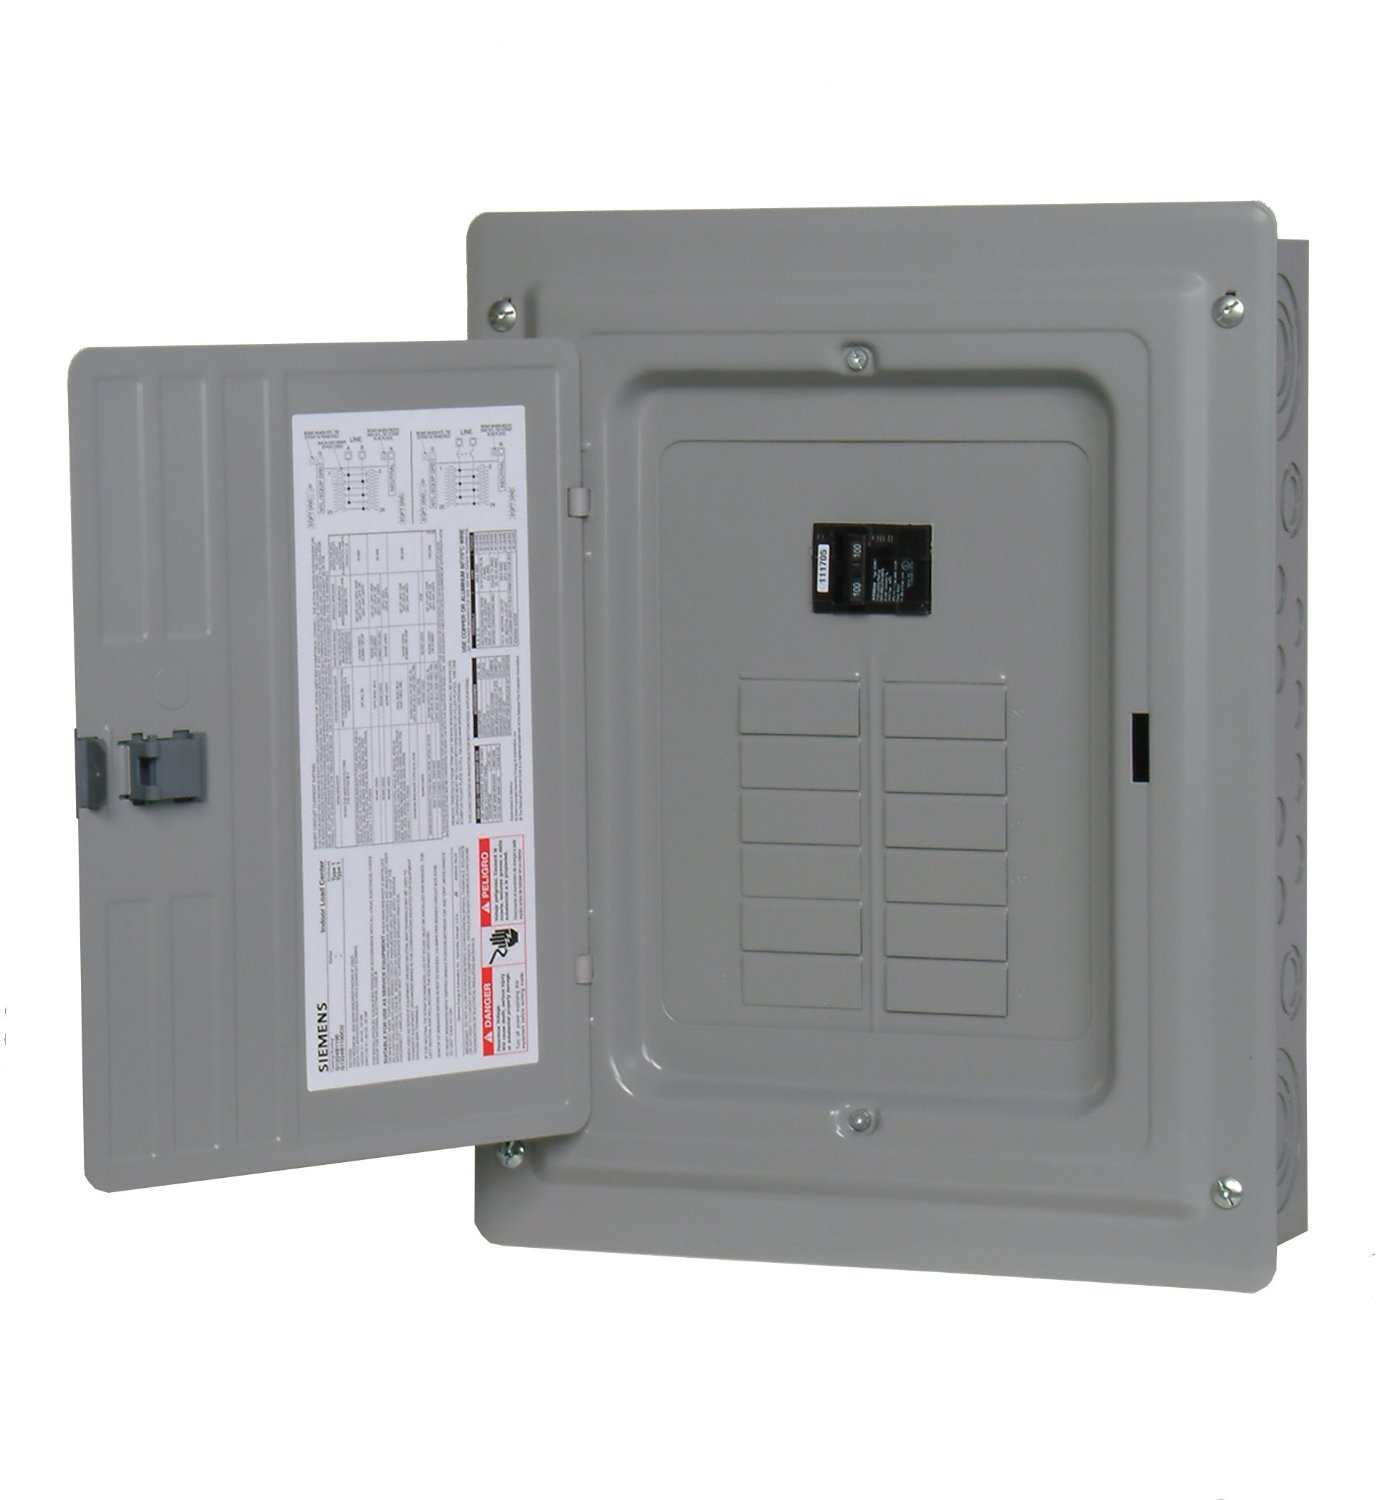 P1224B1100CU 100-Amp 12-Space 24-Circuit Main Breaker Load Center - Circuit  Breaker Panels - Amazon.com